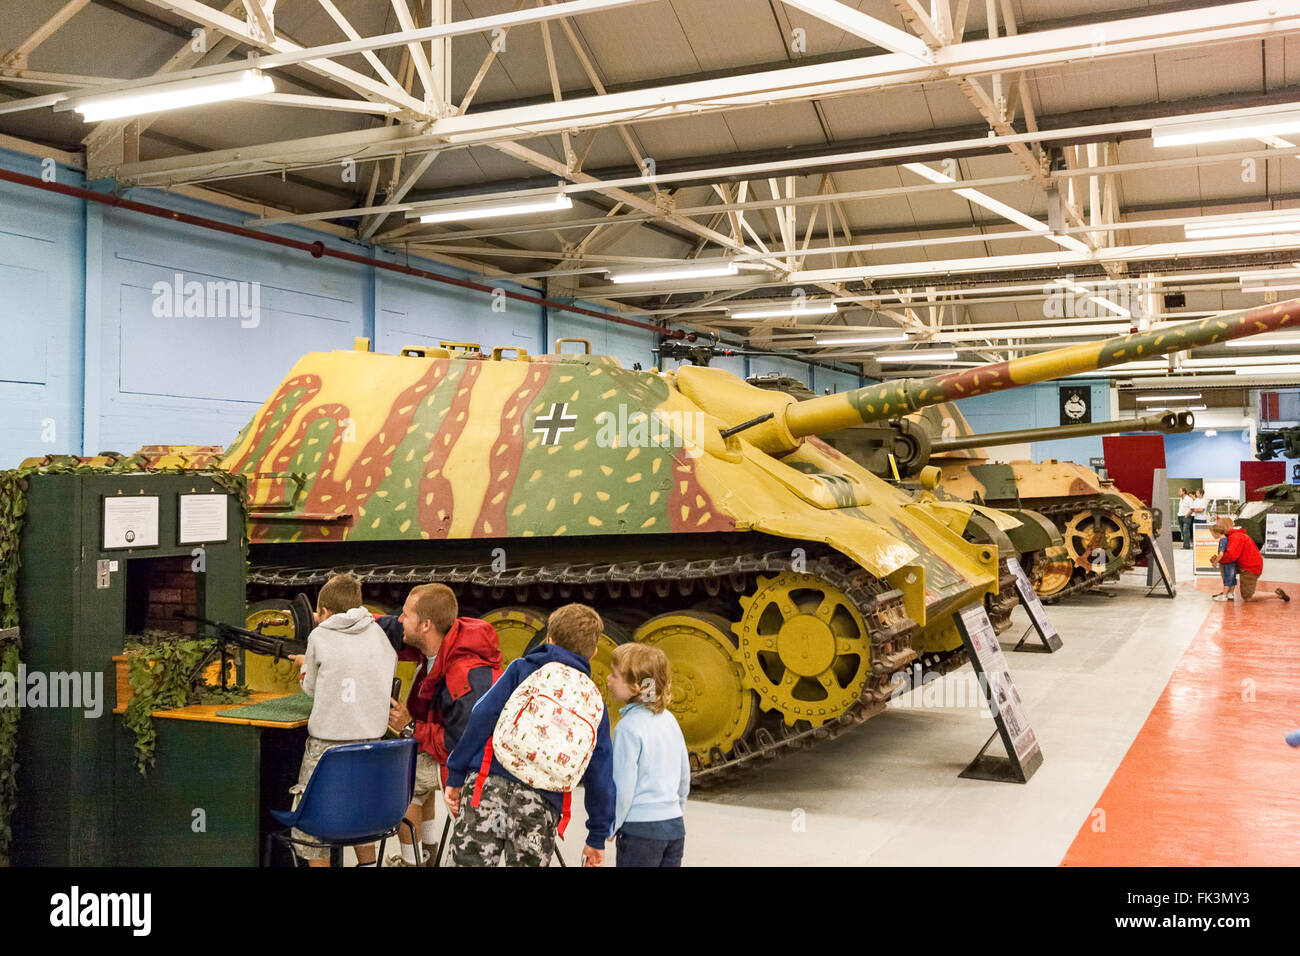 Bovington tank museum interior display. Row of German tanks with Jagpanther tank and father and three children looking - Stock Image